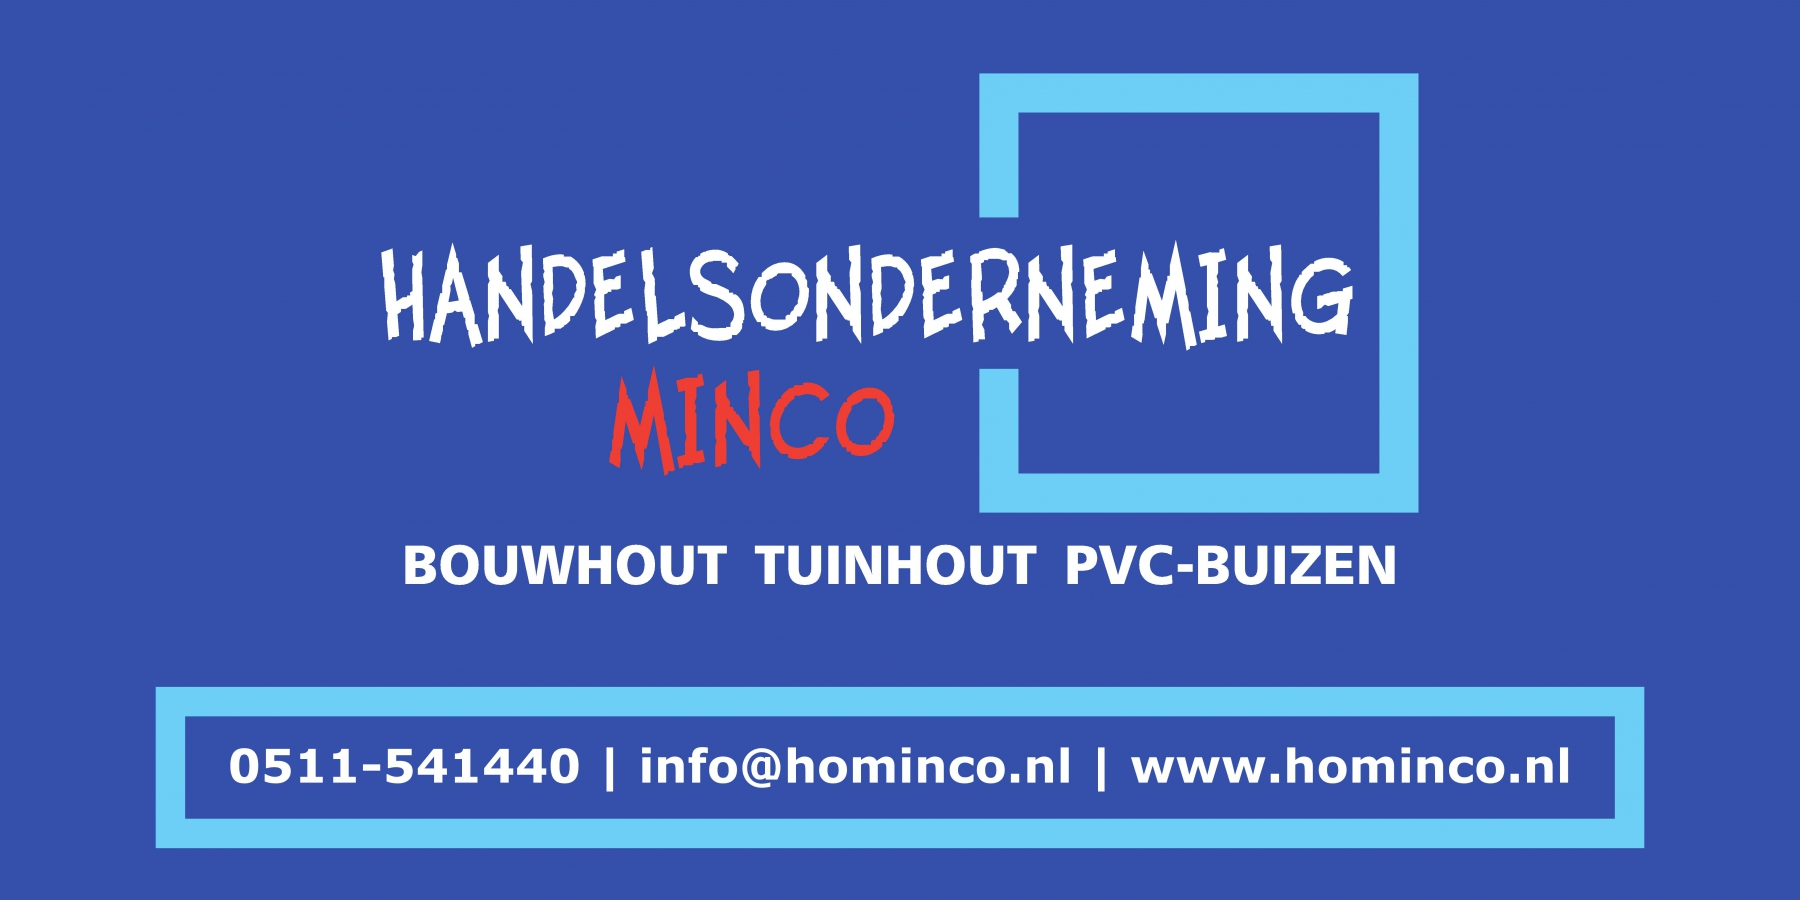 Handelsonderneming-Minco